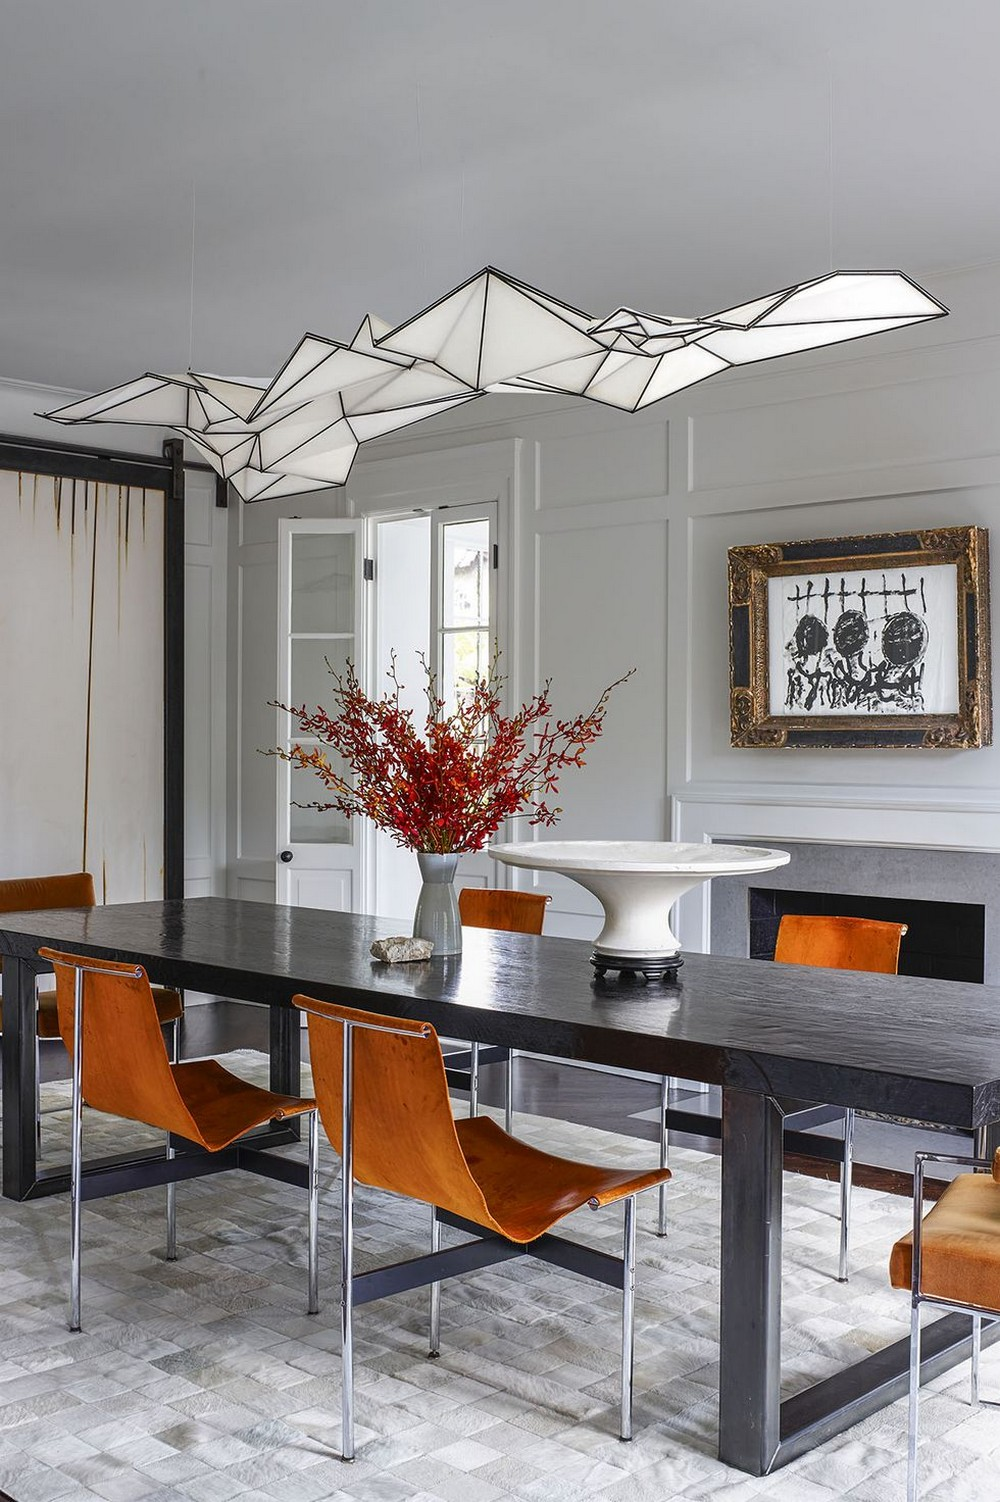 statement chandeliers 13 Dazzling Interior Designs that Highlight Statement Chandeliers 13 Dazzling Interior Designs that Highlight Statement Chandeliers 12